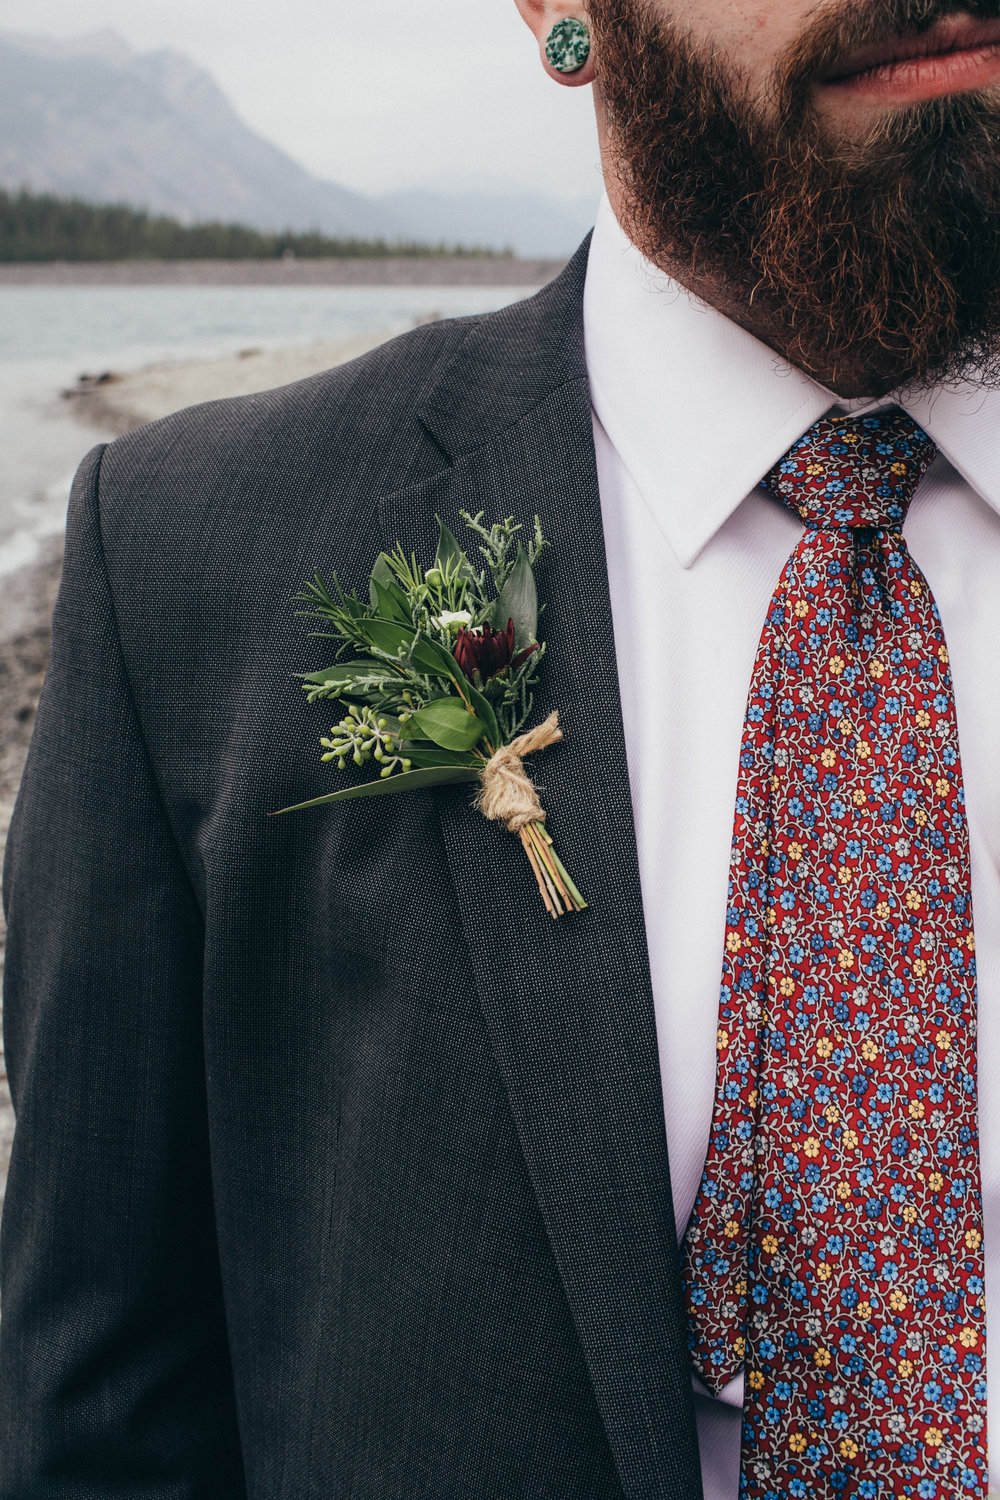 custom wedding boutonniere made in alberta that is affordable